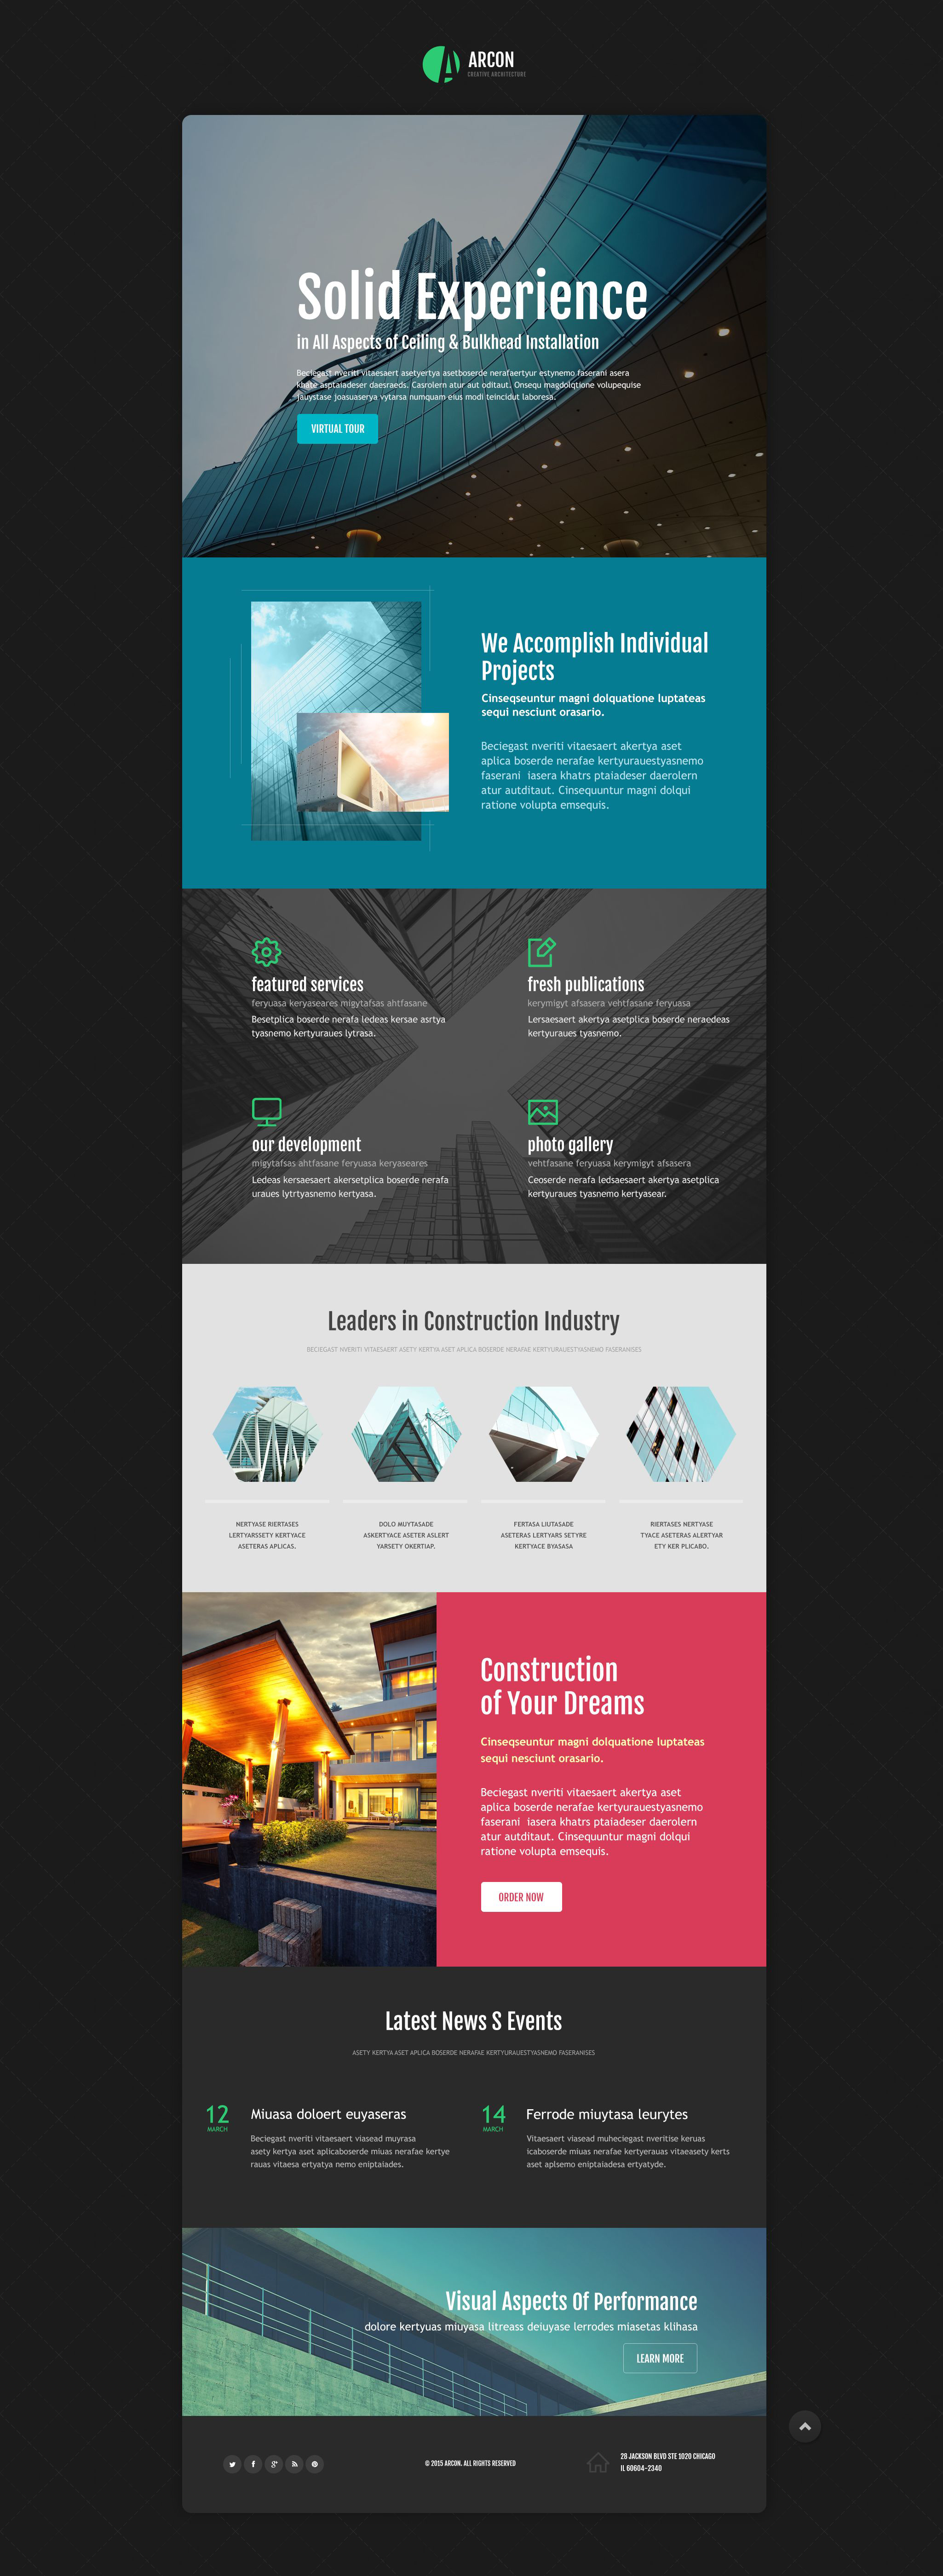 Architecture Responsive Landing Page Template - screenshot